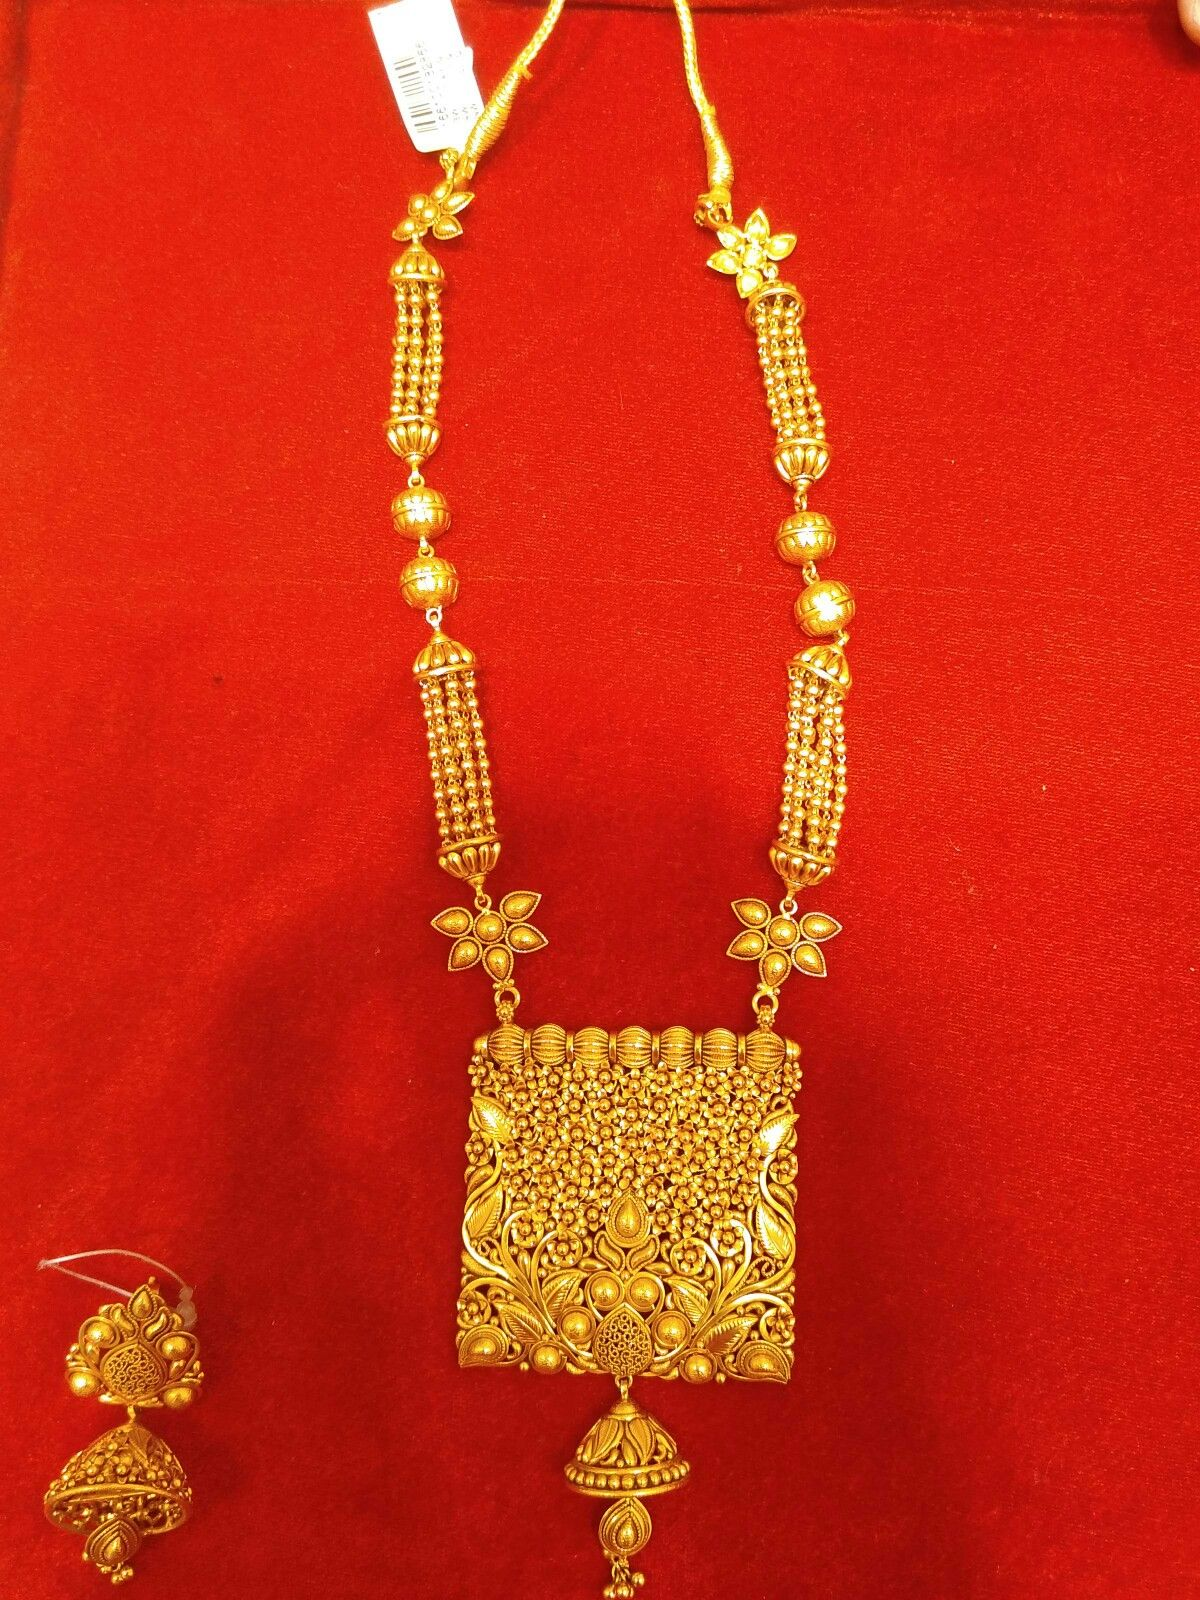 Kalyan Jewellers Bridal Gold Jewellery Gold Jewelry Fashion Online Gold Jewellery